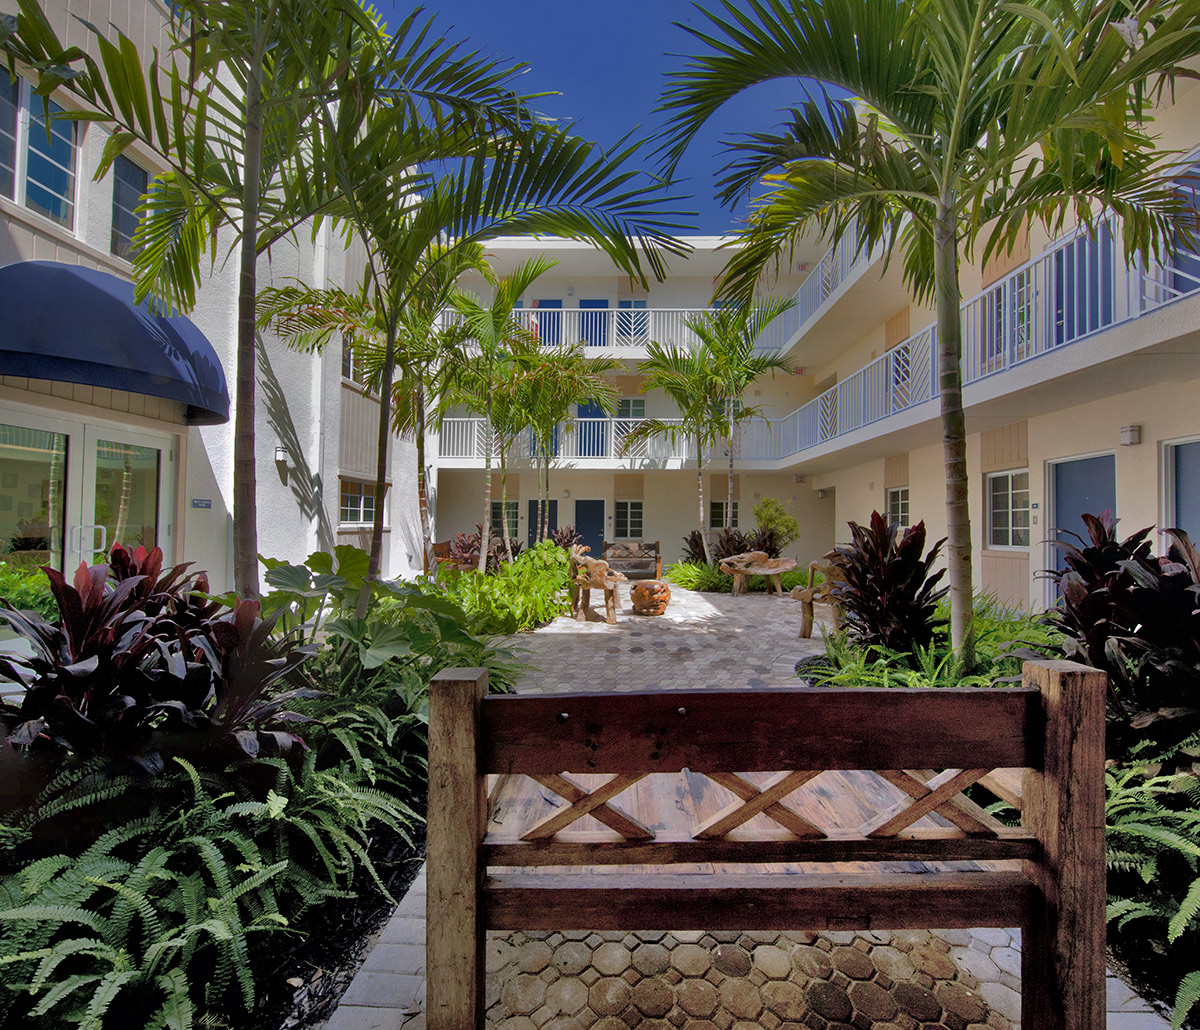 Key West Apartments: MIF Photo Gallery Of Poinciana Royale Affordable Housing